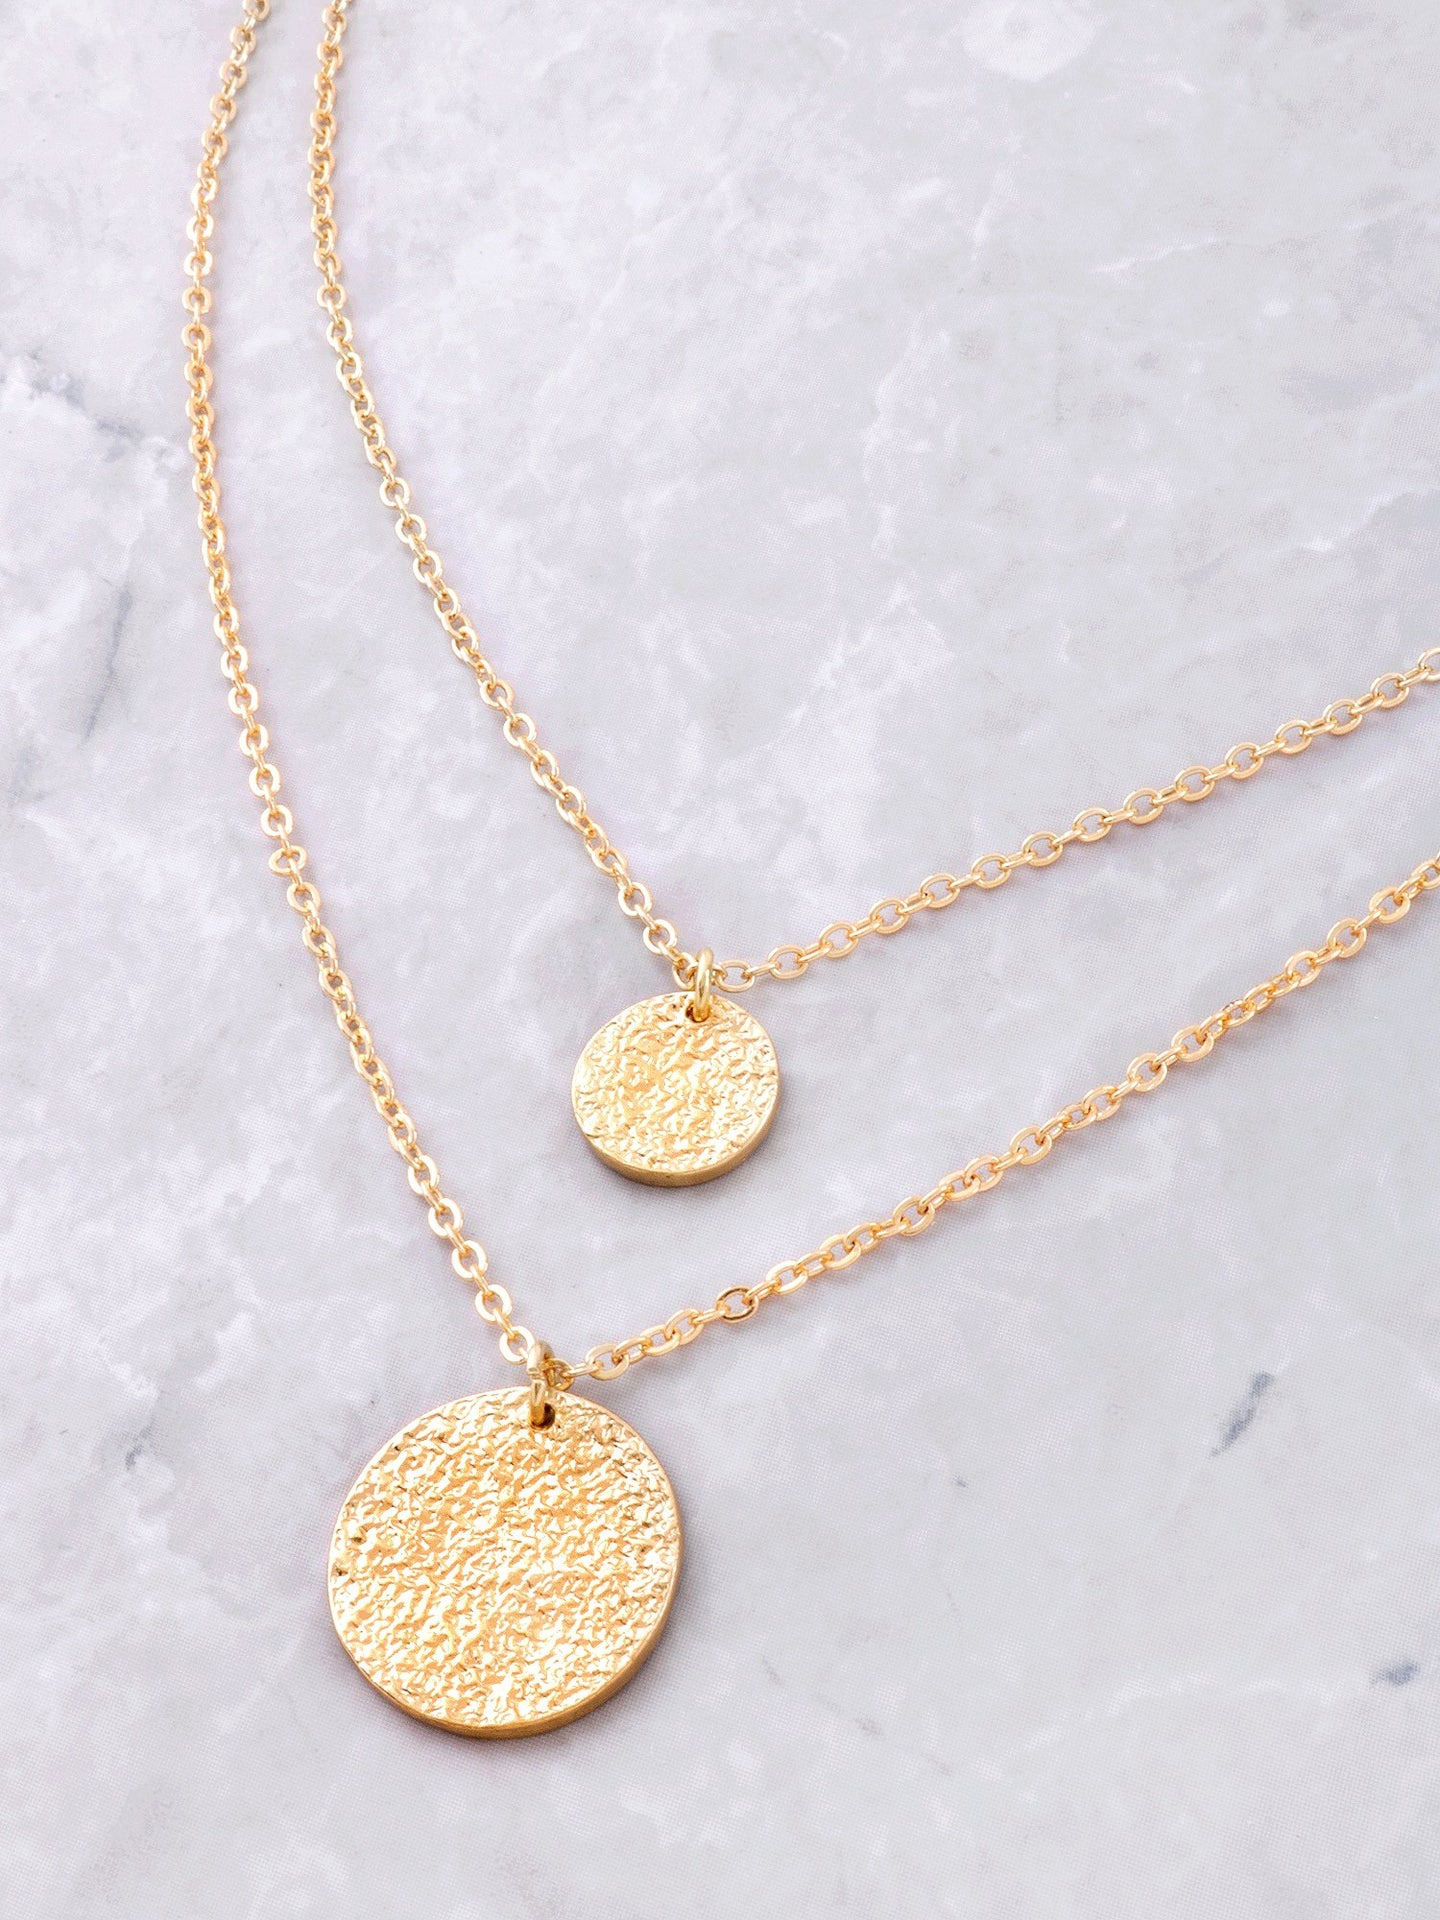 Double Coin Necklace Set Anarchy Street Gold